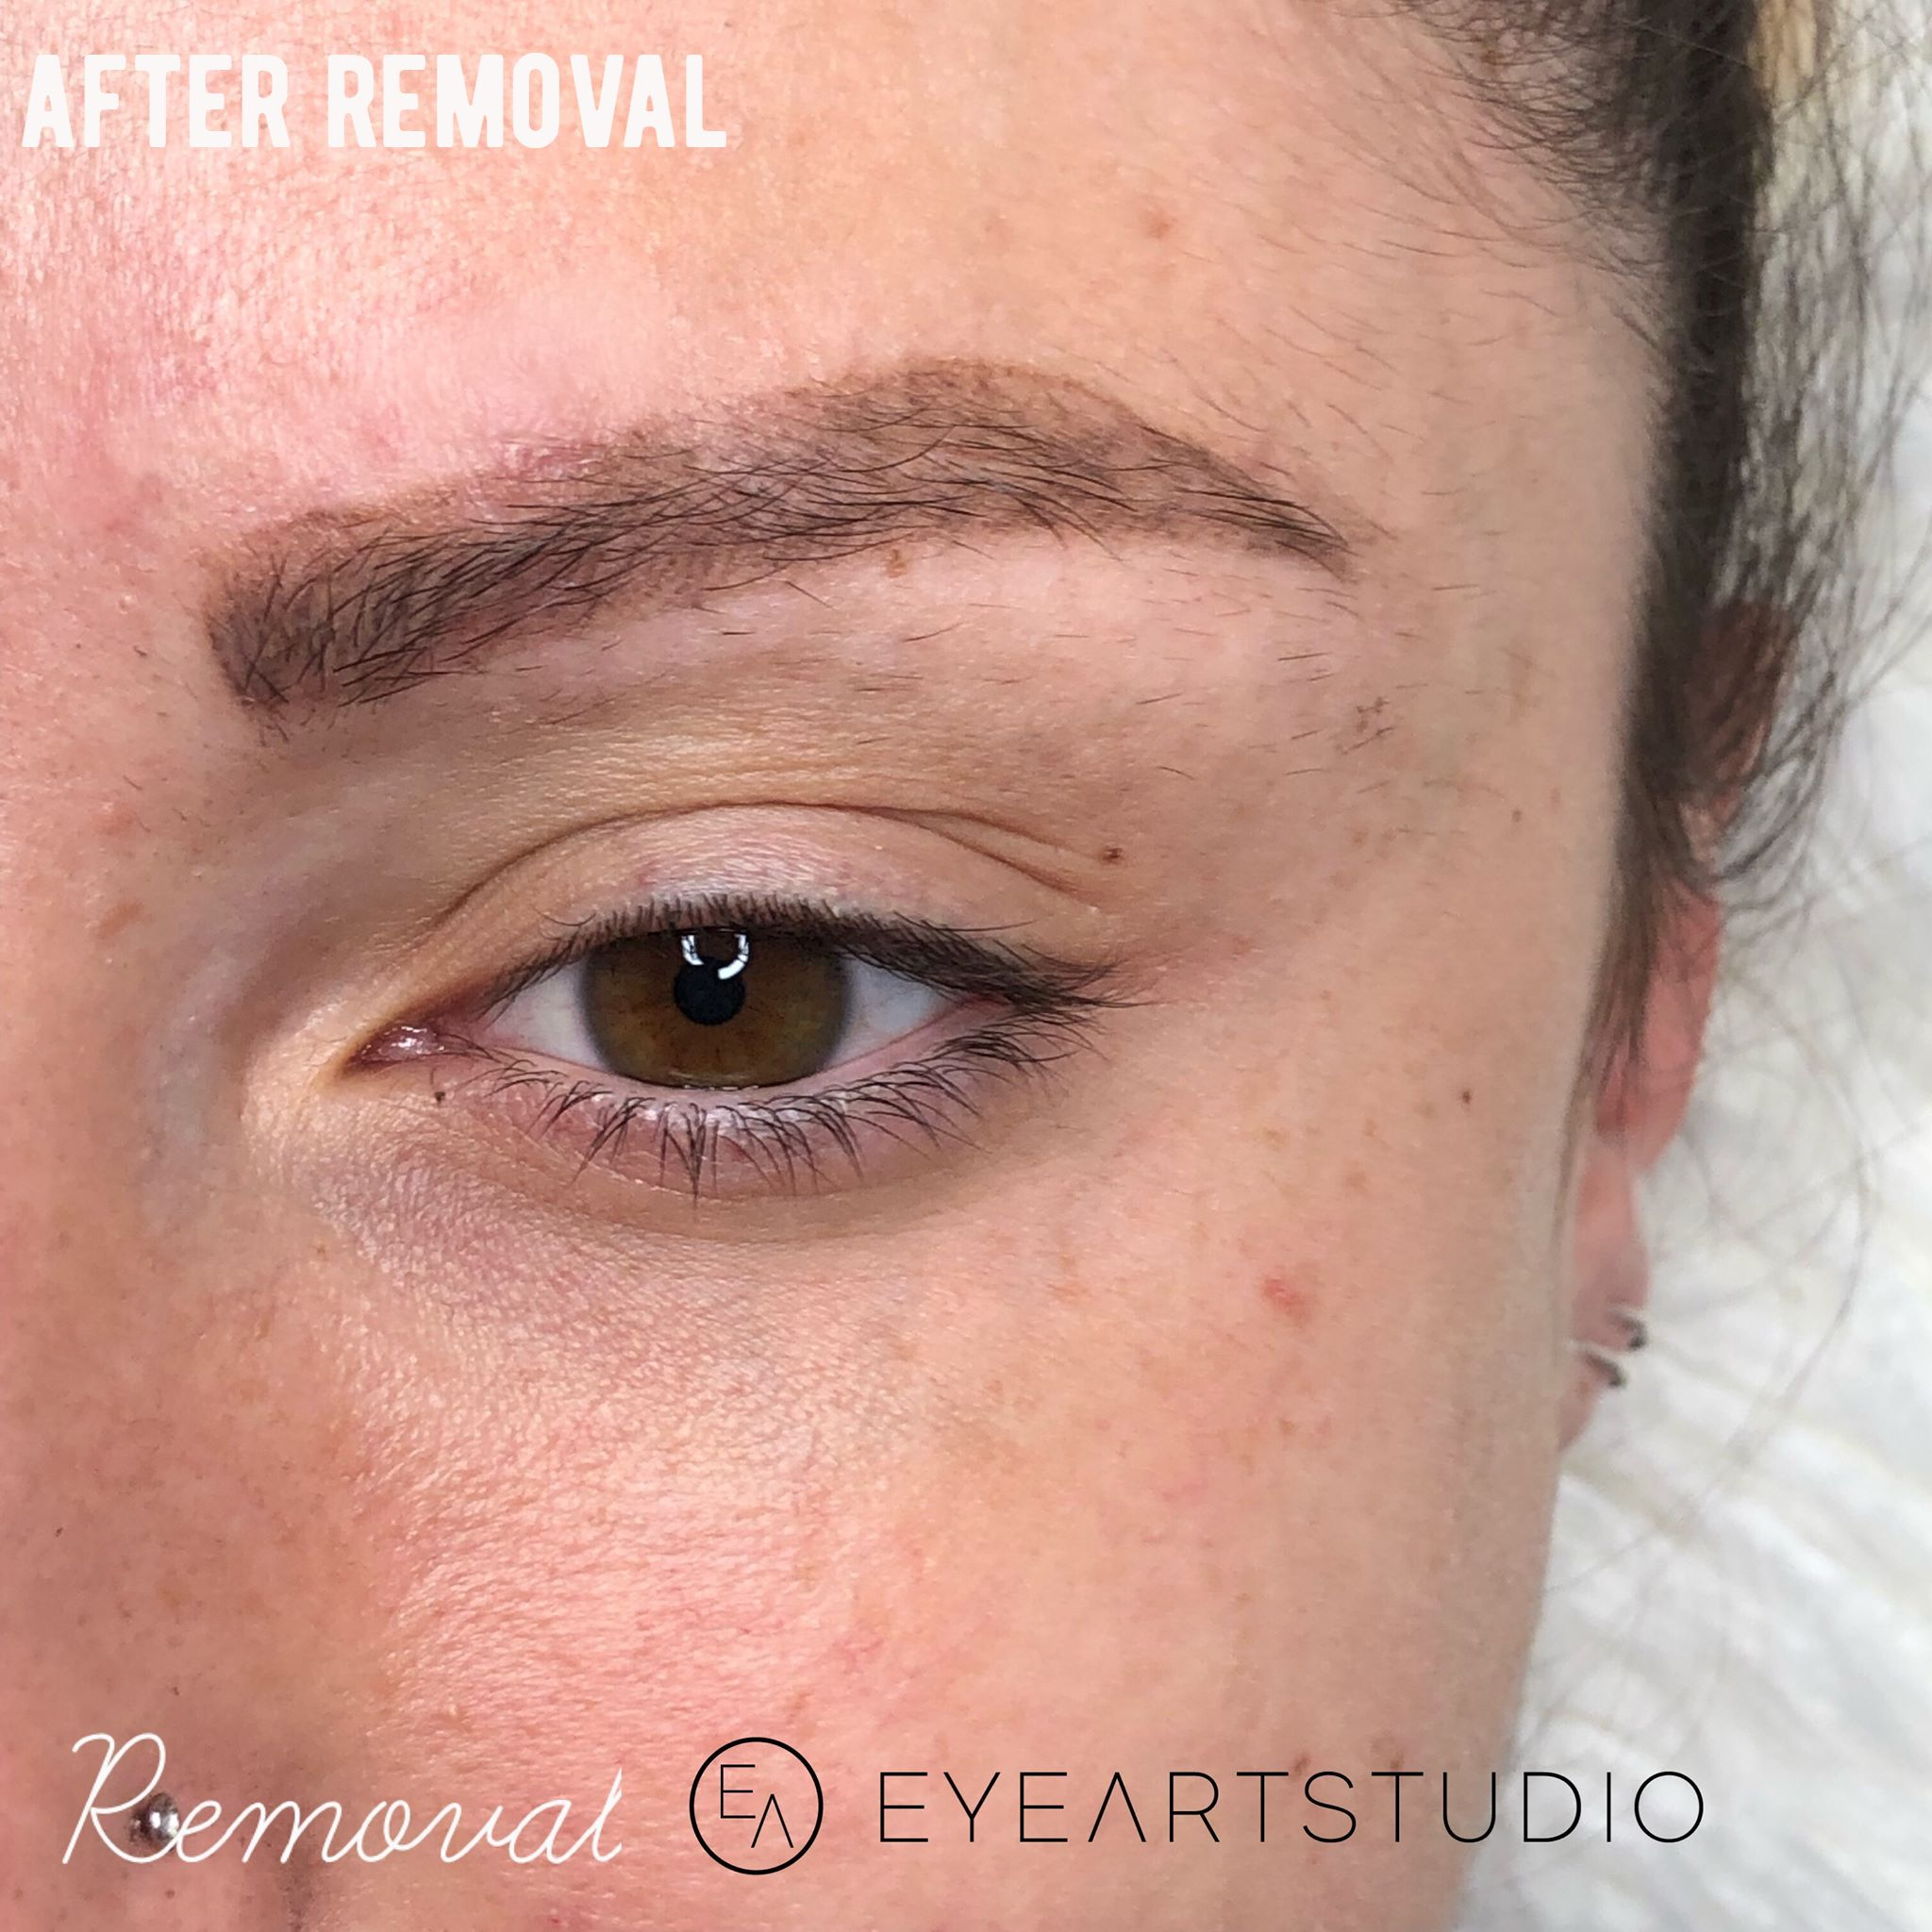 Eyebrow Tattoo Removal, Microblading Removal, Removal Brow Tattoo, Removal Microblading Brow Tattoo